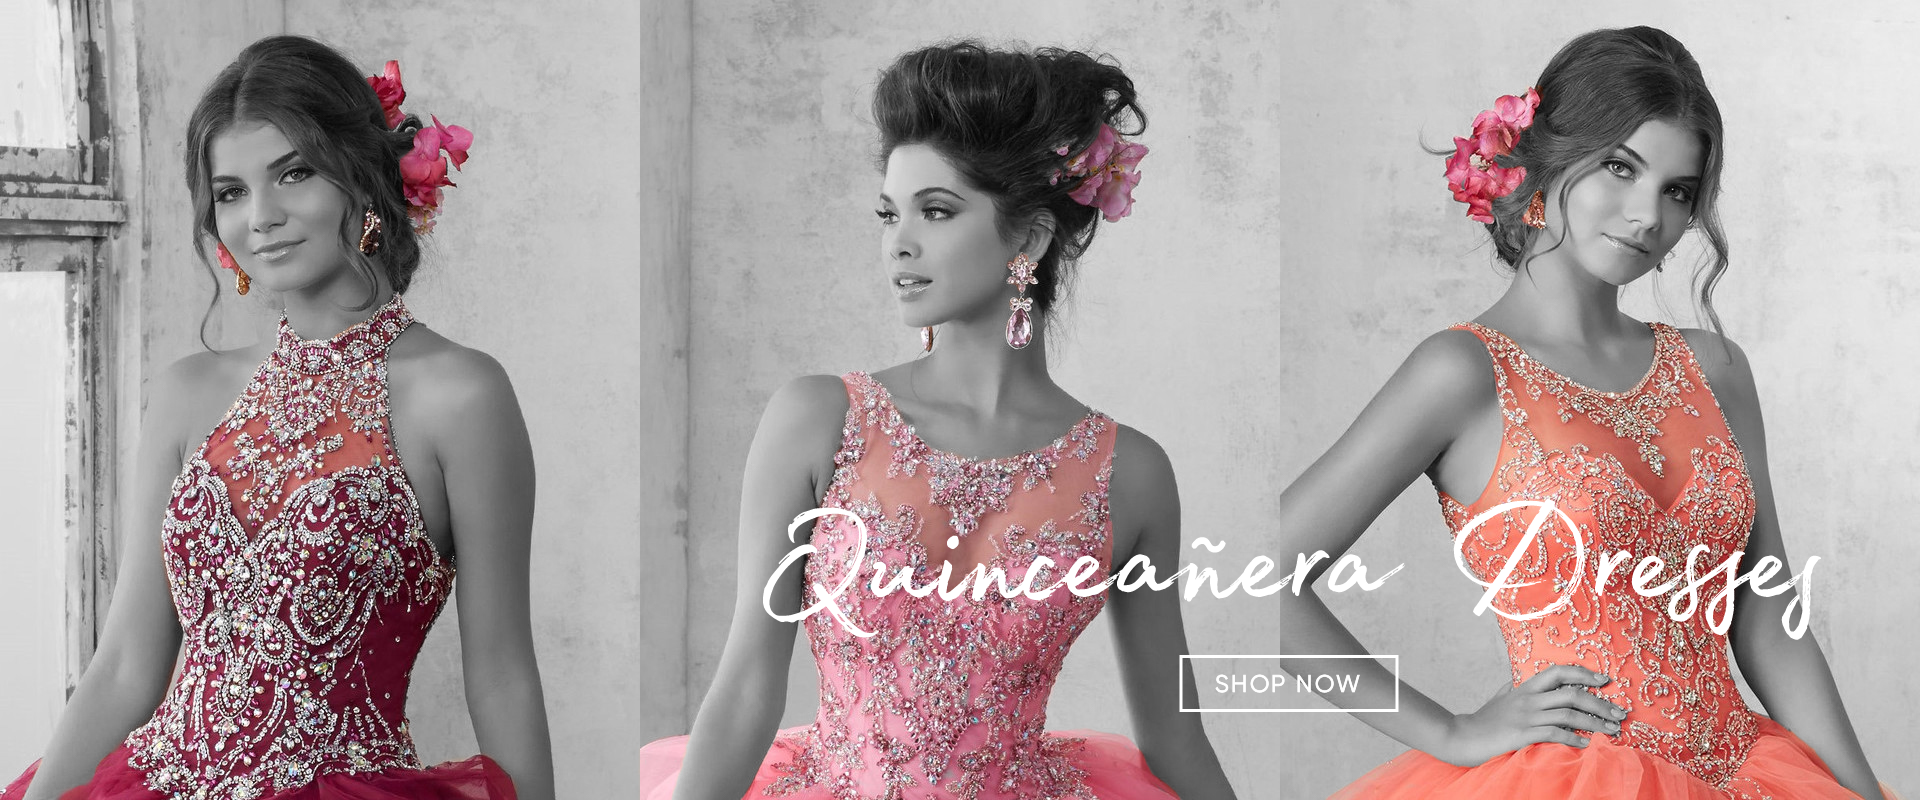 Shop quinceañera dresses from ABC Fashion